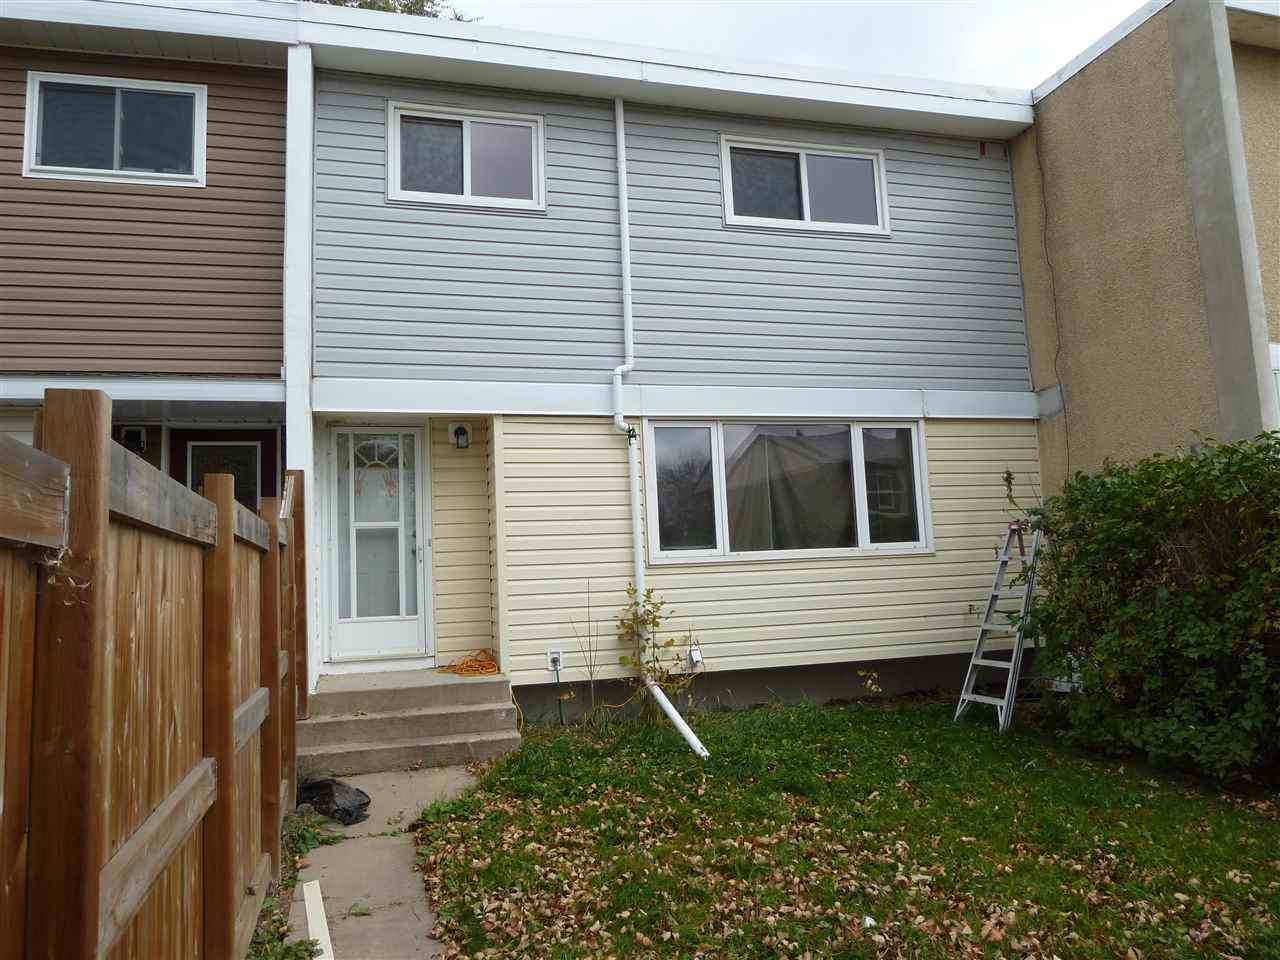 Investor Alert! Or 1st time buyers! Located in the heart of Old Fort Saskatchewan this 2-storey home comes with 3 bedrooms, 4 pce bathroom including a jacuzzi tub as well as 3 pce. Basement bathroom. Laminate flooring throughout most of the house, large living room, eating area and kitchen cabinet space. Add laundry room and family room area in a partially finished basement allows for immediate function with possibility for change. Freshen up the inside for family comfort then step outside to a large deck leading to an 18 x 24 ft. garage with 60-amp service as well as gas-line ready for garage heater. Consider downtown shopping, restaurants, fully fenced & landscaped area close to playgrounds with ample parking makes this a property full of value and worth considering. Don?t pass this one by!